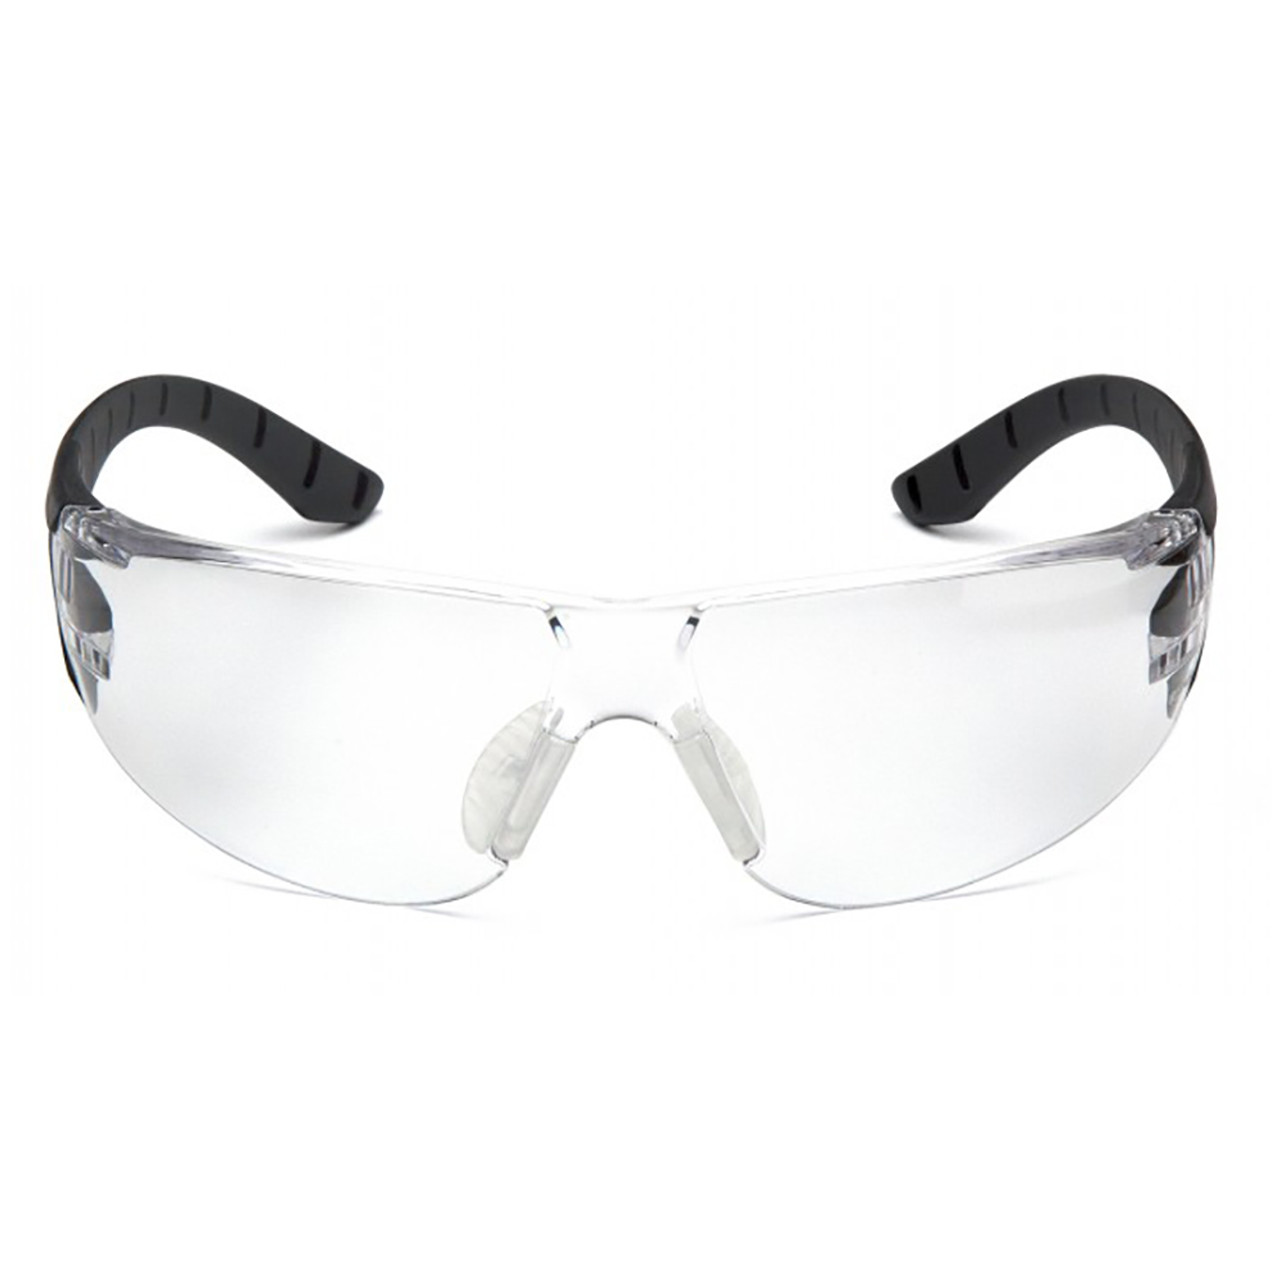 Pyramex Endeavor Plus Series Safety Glasses with H2X Anti-Fog Lens